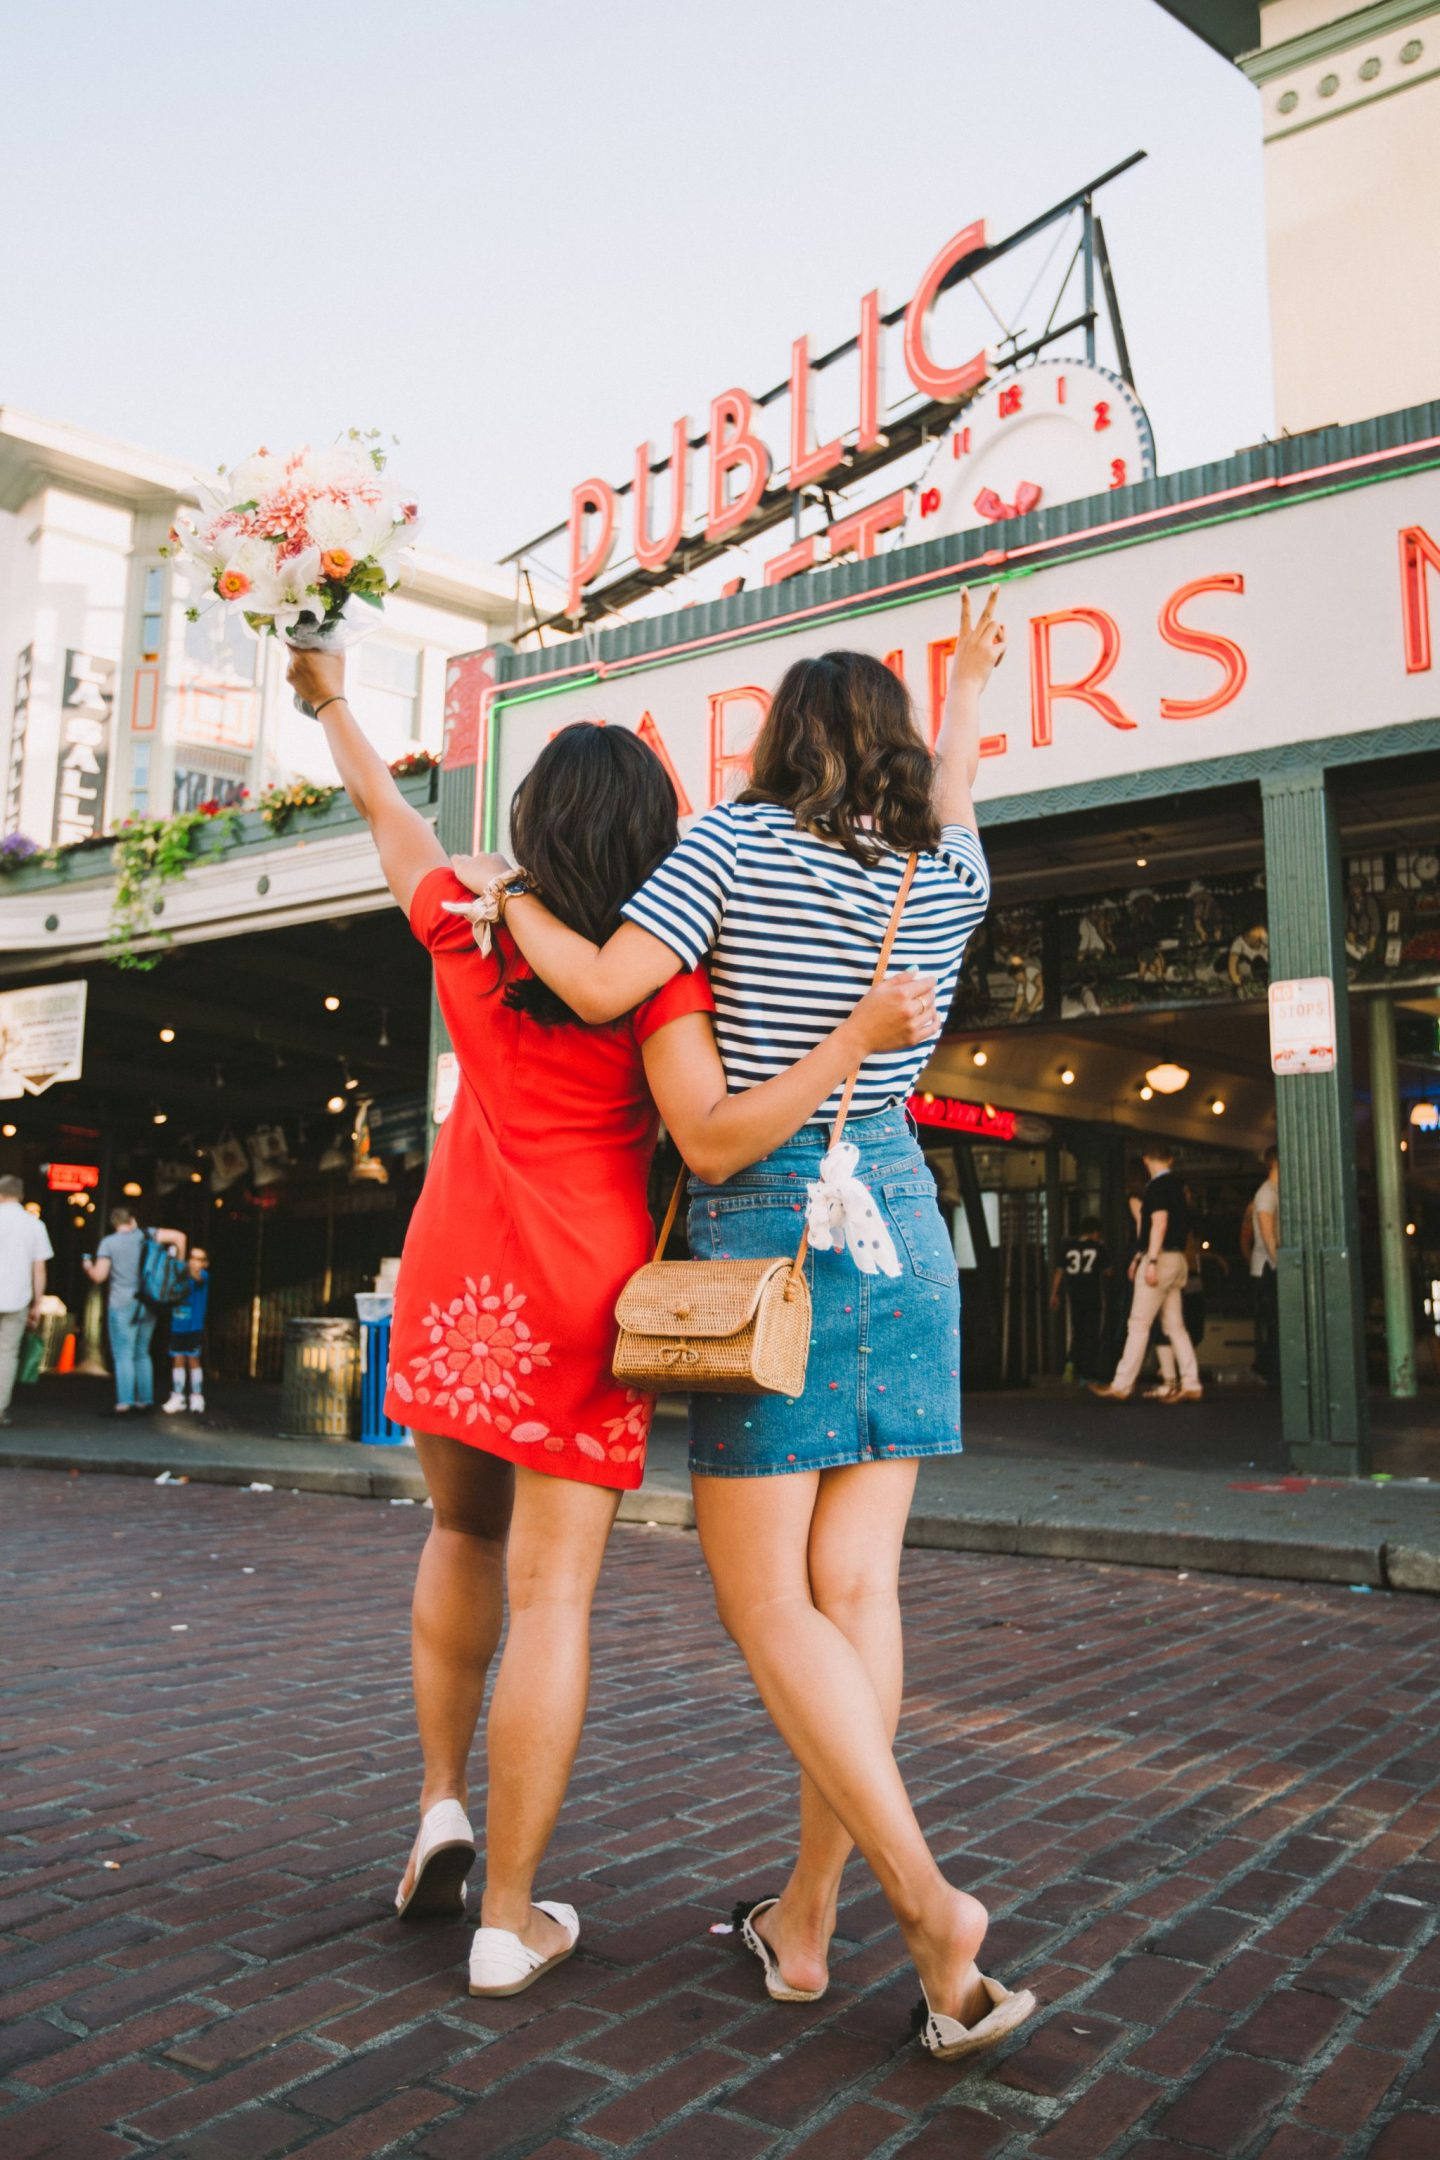 Things to do at Pike Place Market – Things to do in Pike Place Market – Pike Place Market shops – best of pike place market – pike place market secrets – things to do in seattle – pike place market must eat – best of pike place market 2018 – best cheap eats pike place market